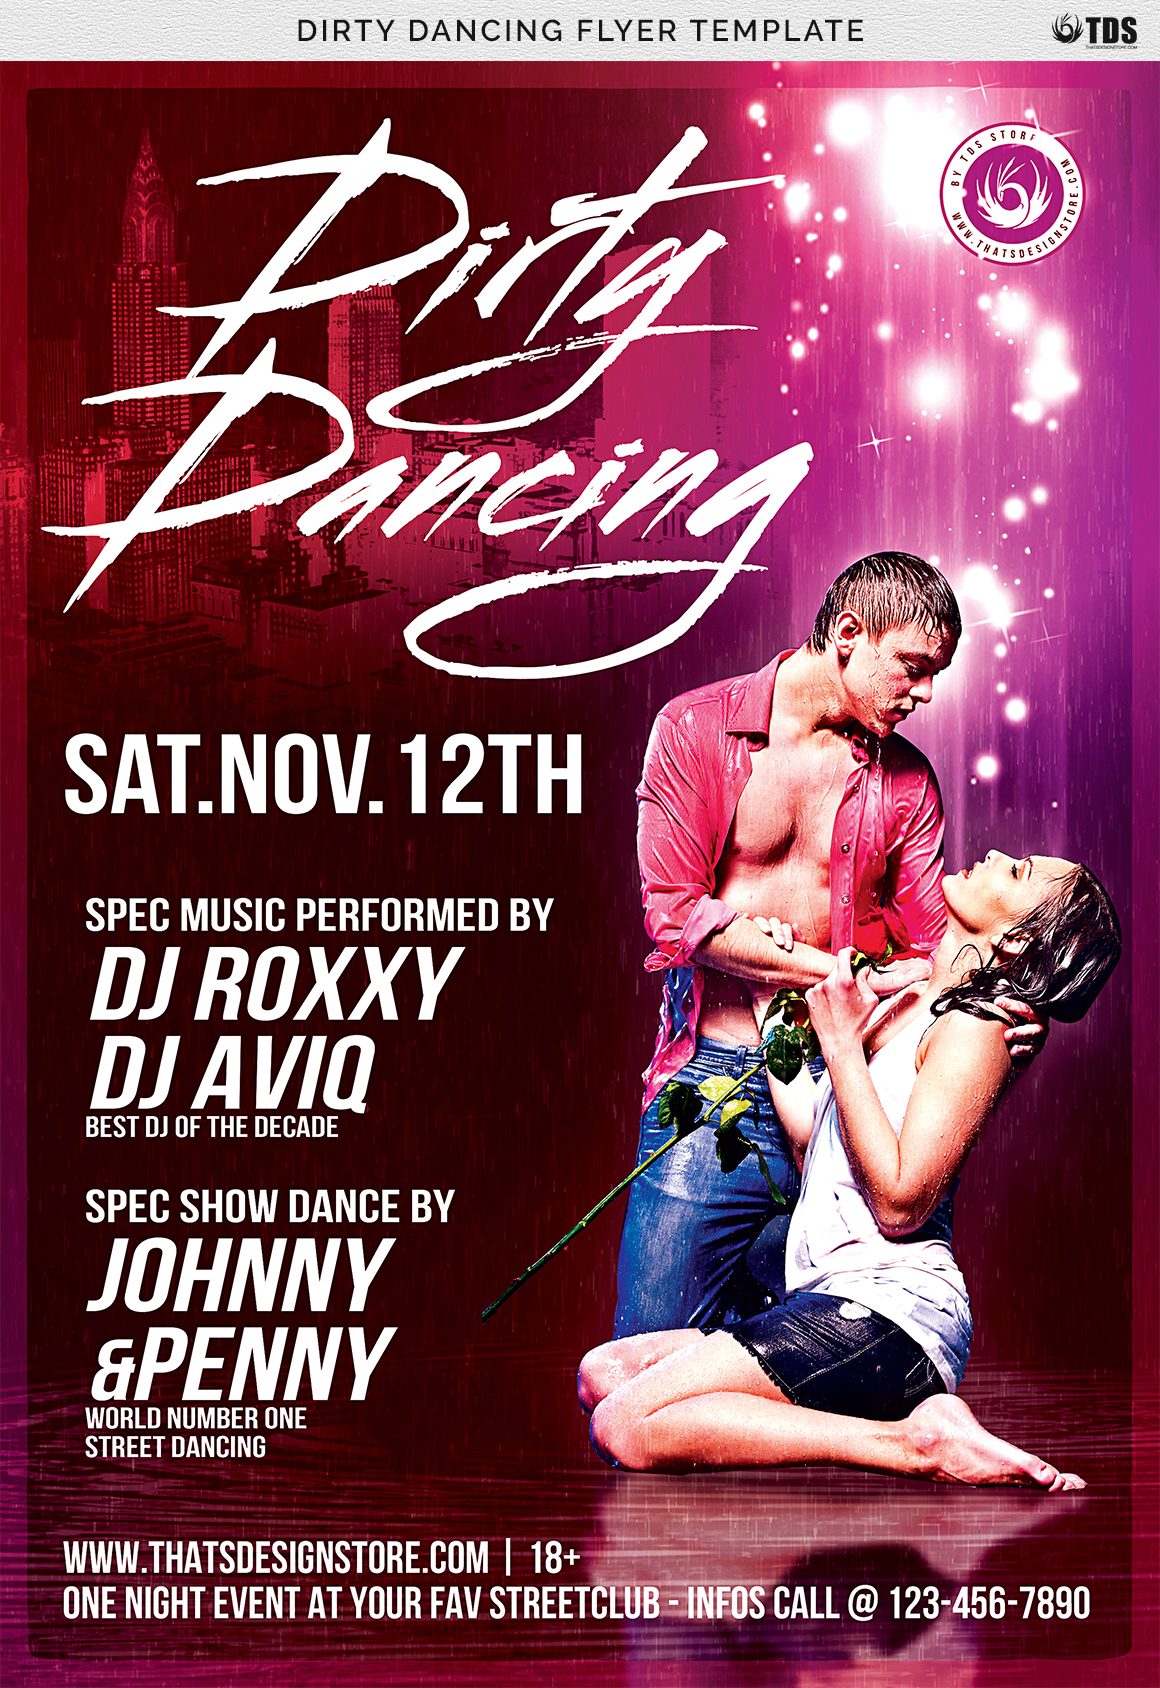 Dirty Dancing Flyer Template example image 7